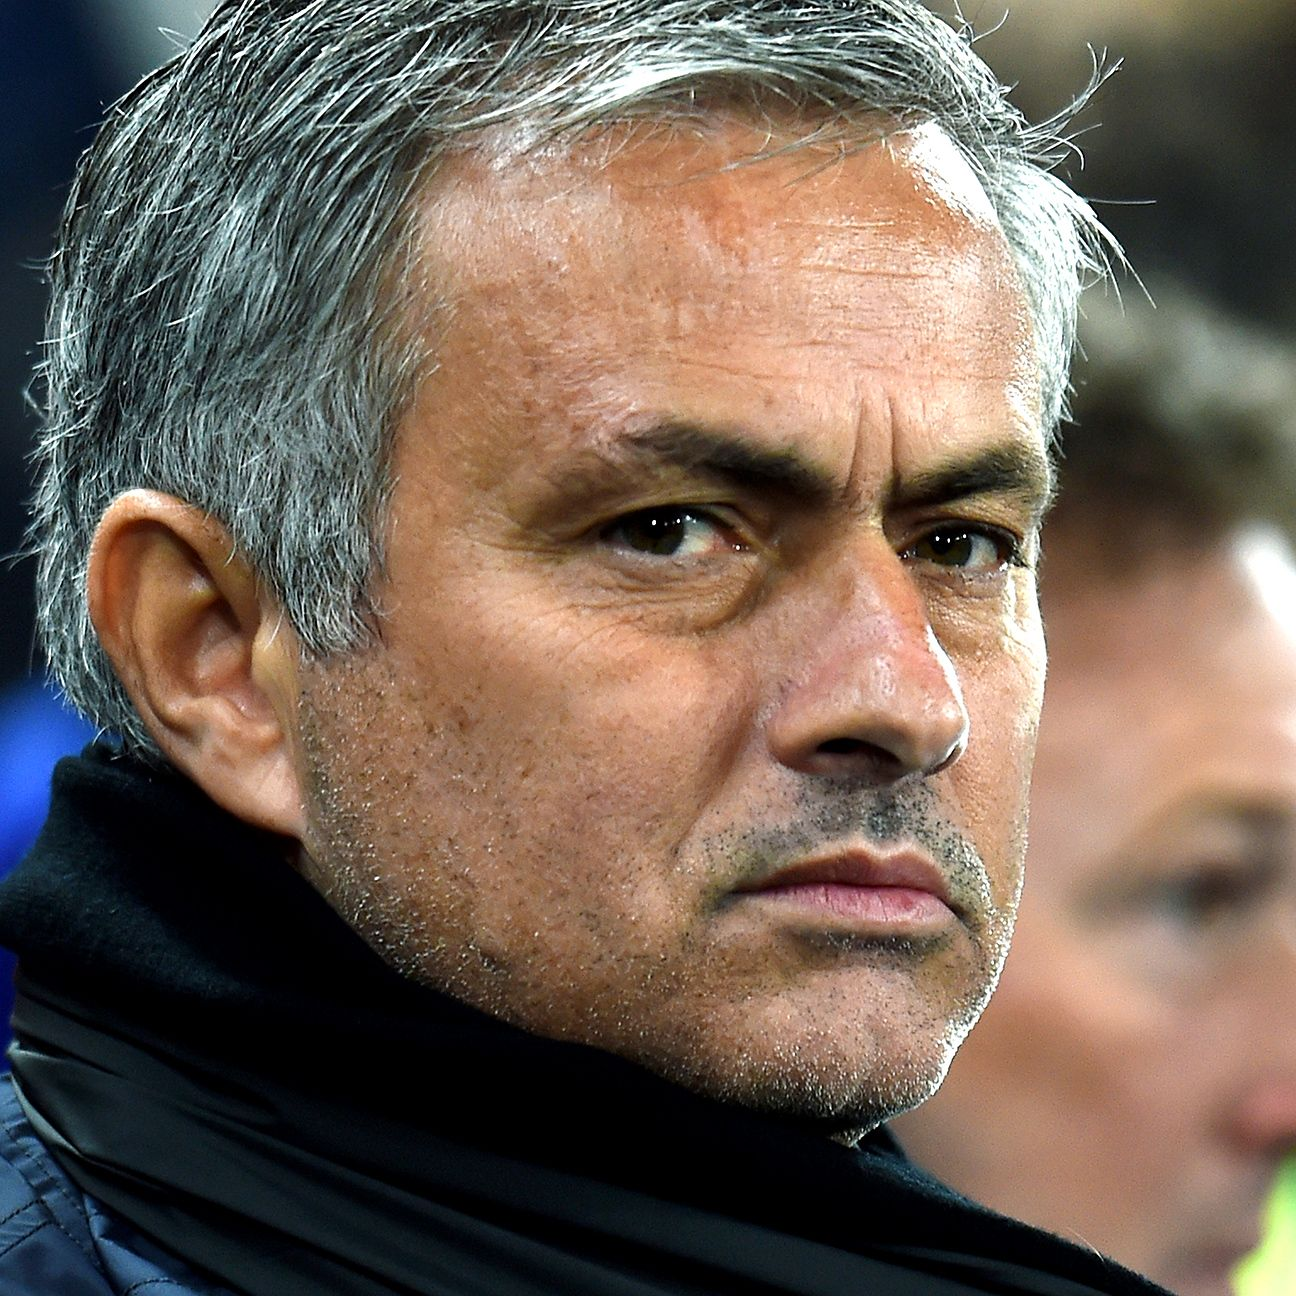 Chelsea boss Jose Mourinho is of the opinion that pressing for more goals amid a blowout win still shows respect for the opponent.